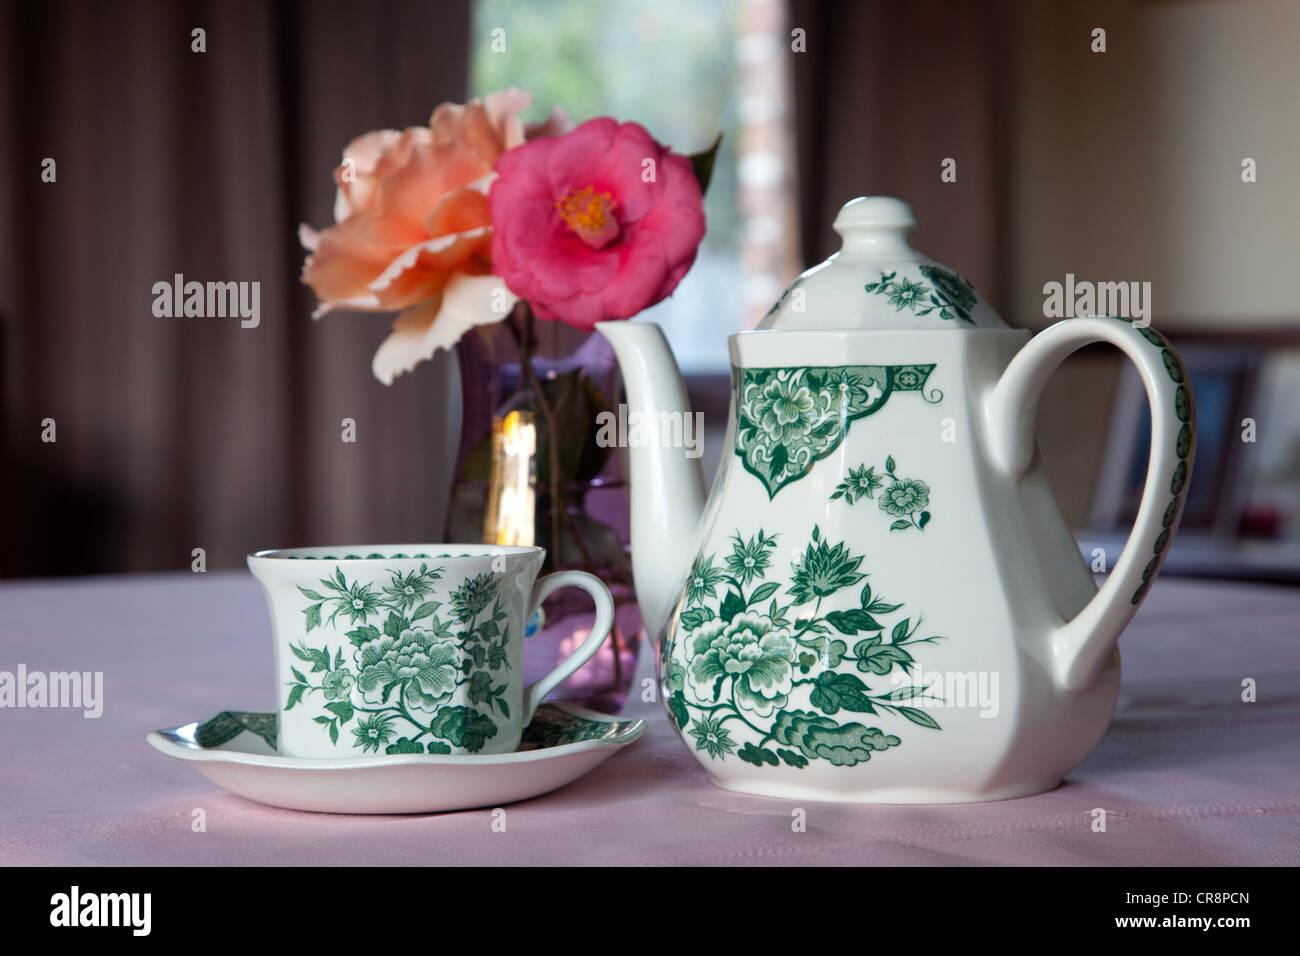 Teacup and Teapot in front of a vase of flowers in Australia Brisbane - Stock Image